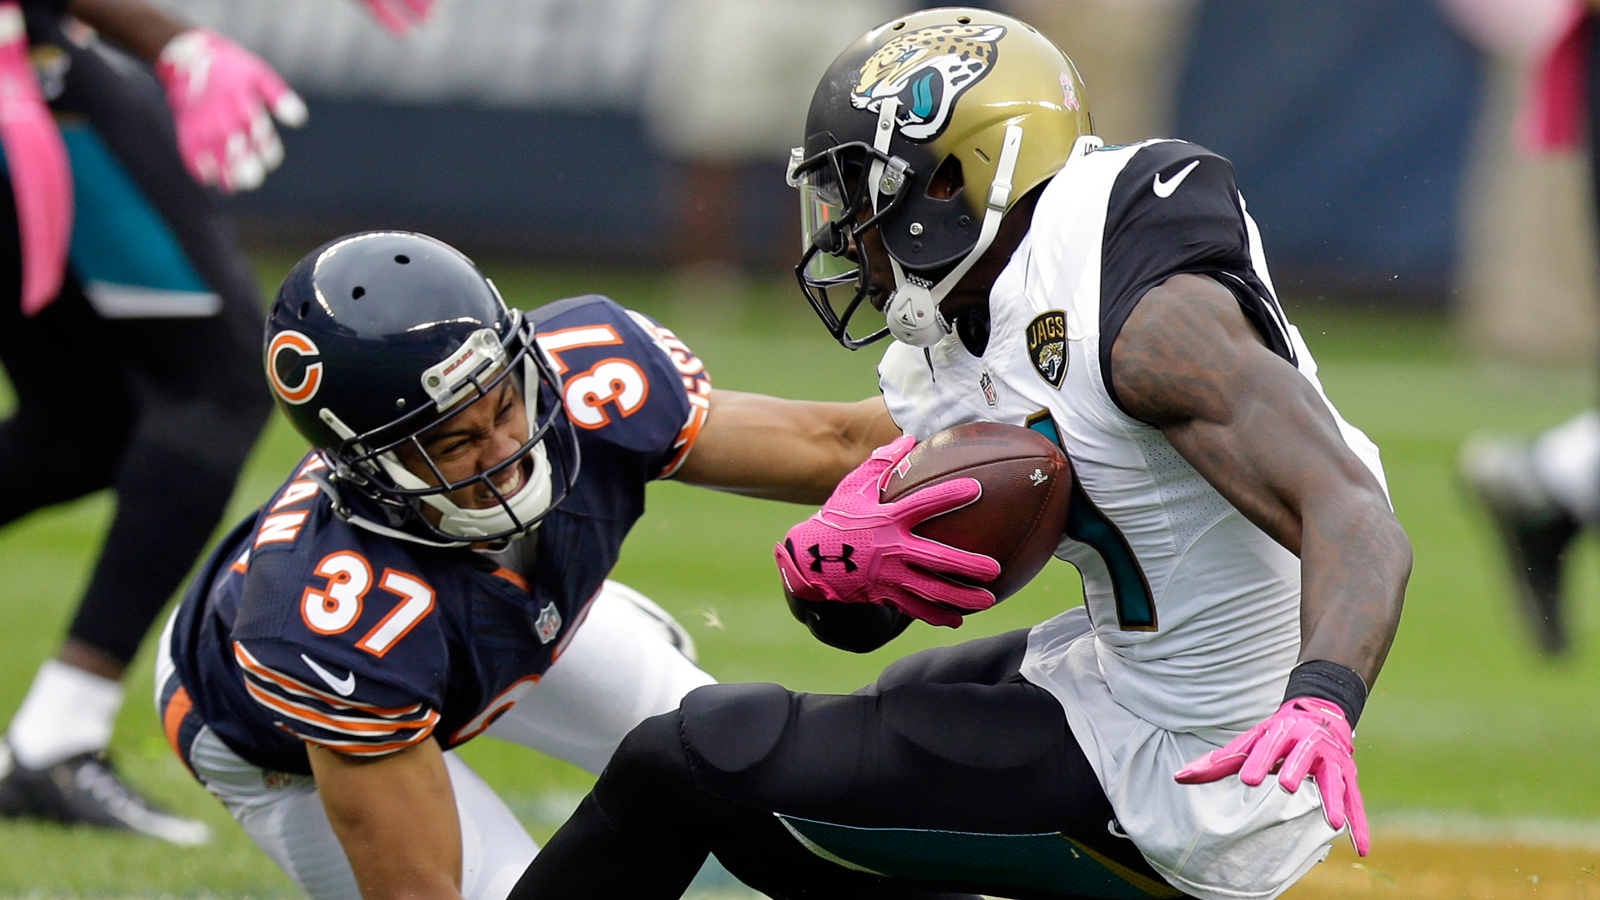 Jaguars score 17 in final quarter to rally past Bears